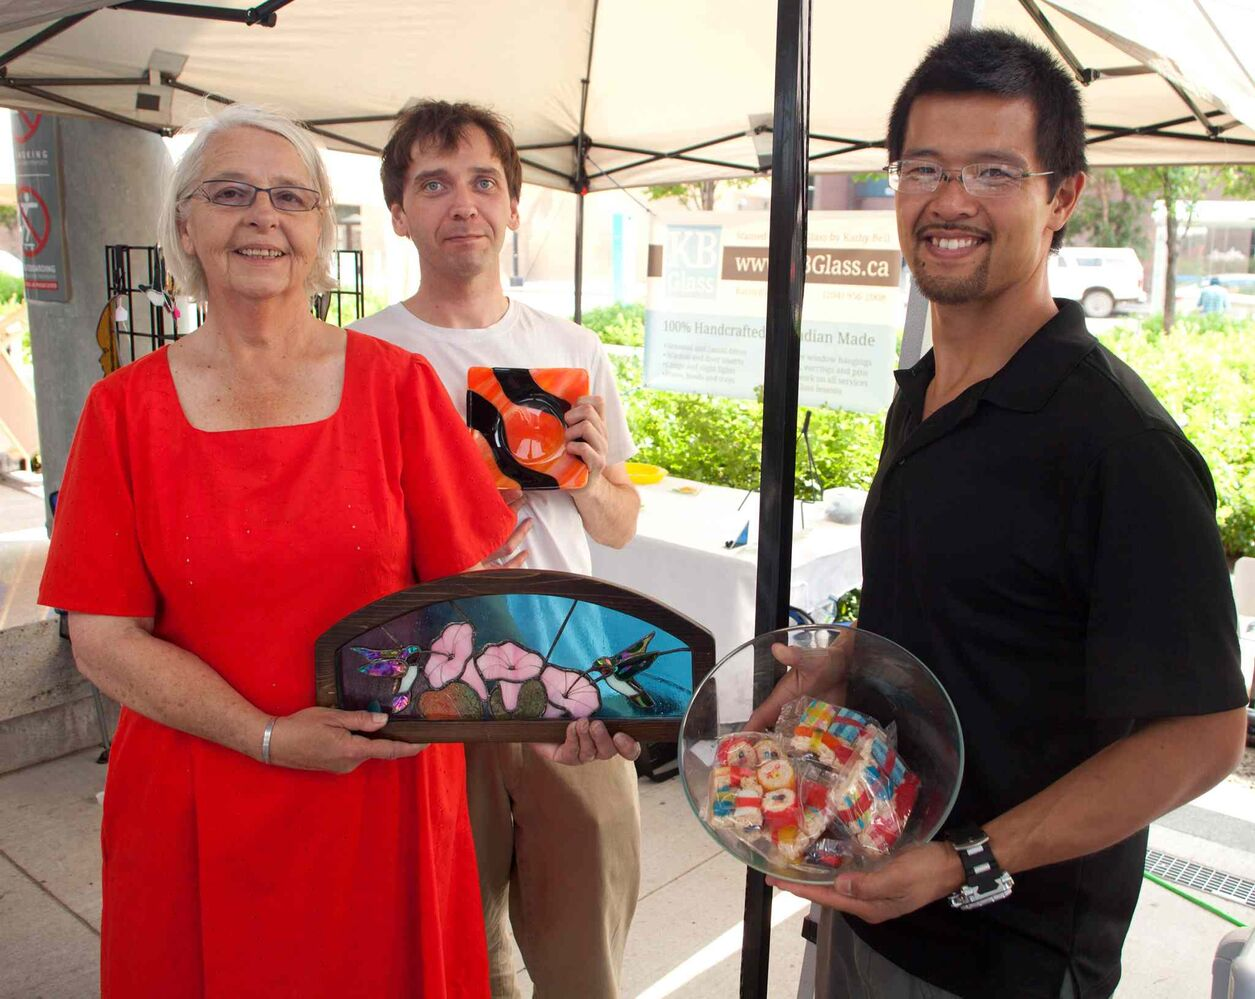 Unique products, baking and produce are available at the outdoor Downtown Farmer's Market at Manitoba Hydro Place. The market, organized by Downtown Winnipeg BIZ, is open from 10 a.m. to 3 p.m. every Thursday during the summer months, until mid-September. It then reverts to a monthly event indoors. Pictured, from left, are Kathy Bell, Joseph Dyer (kbglass.ca) and Jeff Poon (sweetcbakery.ca). (John Johnston / Winnipeg Free Press)